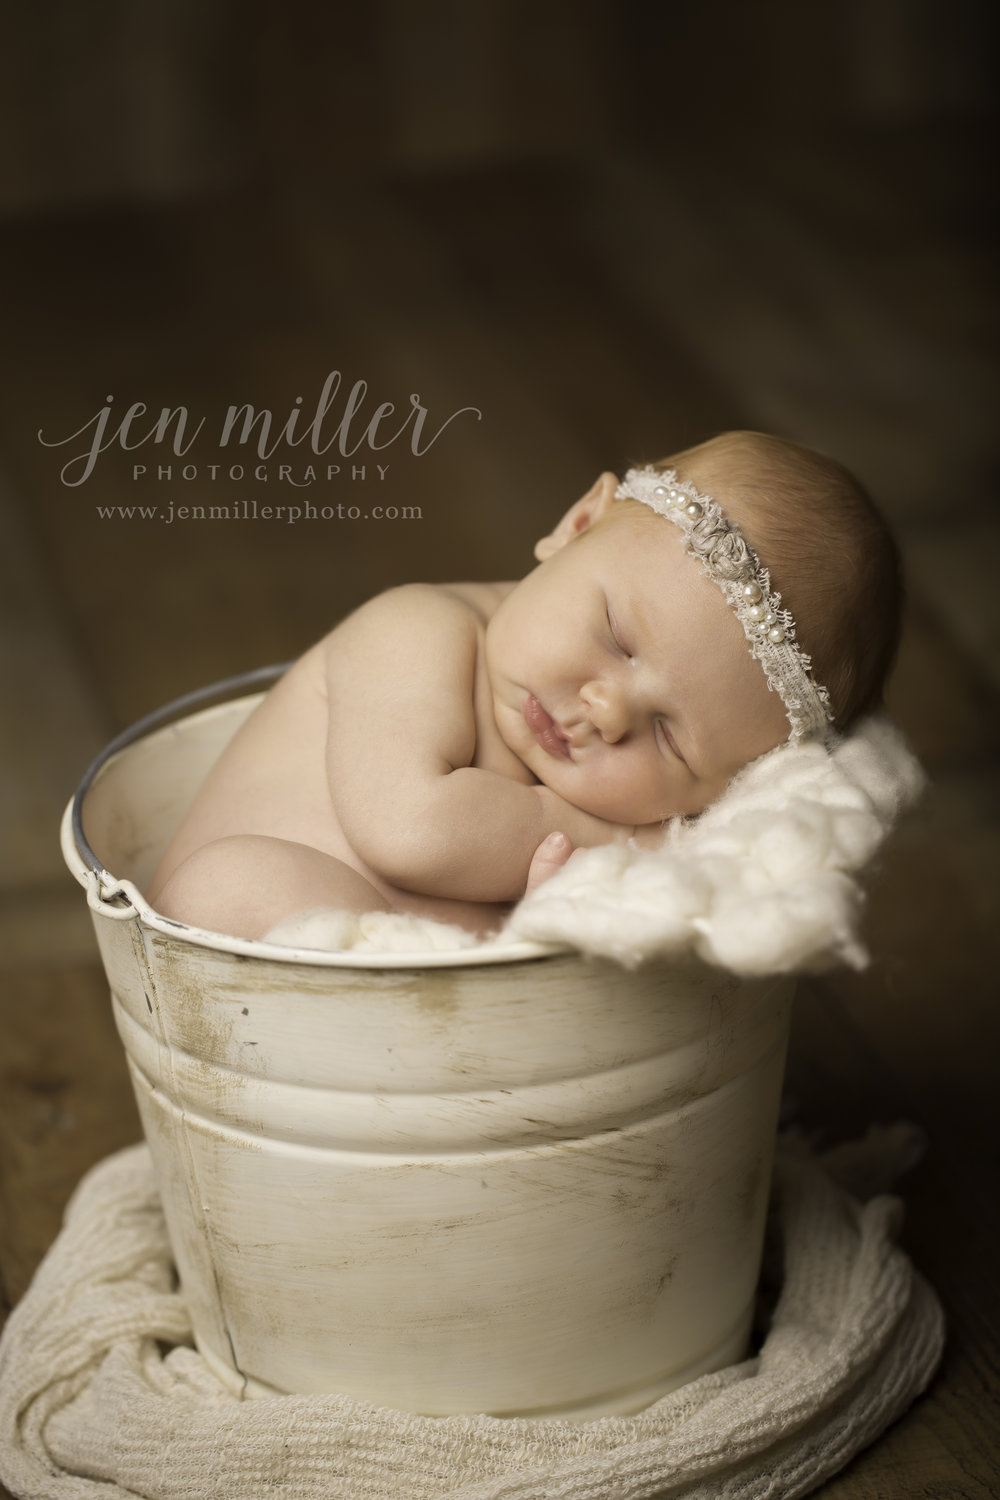 - [ newborns ]Newborn sessions are $200 and include up to 4 hours. Why 4 hours? This allows ample time for changing, feeding, and lots of cuddling during the session. We let the little one guide the session and work at baby's pace. Multiple sets are provided and family photos are definitely encouraged. Please note this fee does not include prints or products. You will come in for your viewing and ordering session 3-4 weeks after the session takes place. Newborn sessions are discounted for clients who also book a maternity session or milestone session of their little one. Ask to see my full Baby Collections price guide for all of these details.